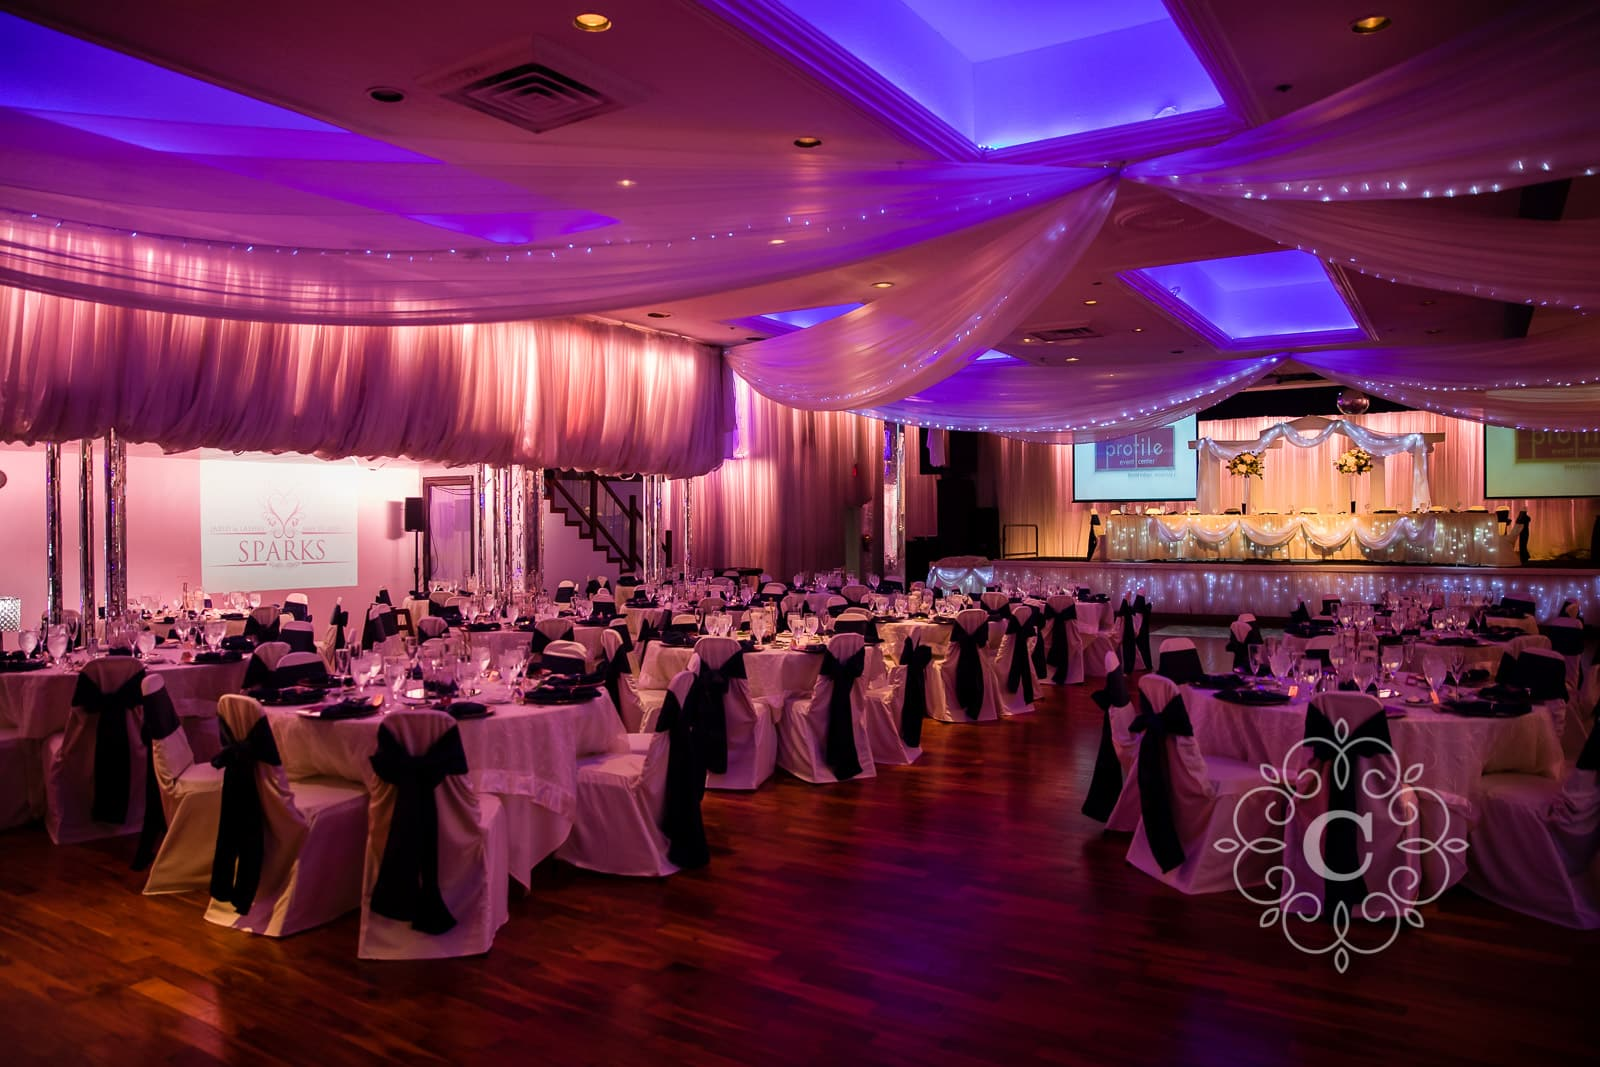 Profile Event Center Minneapolis MN Wedding Photo